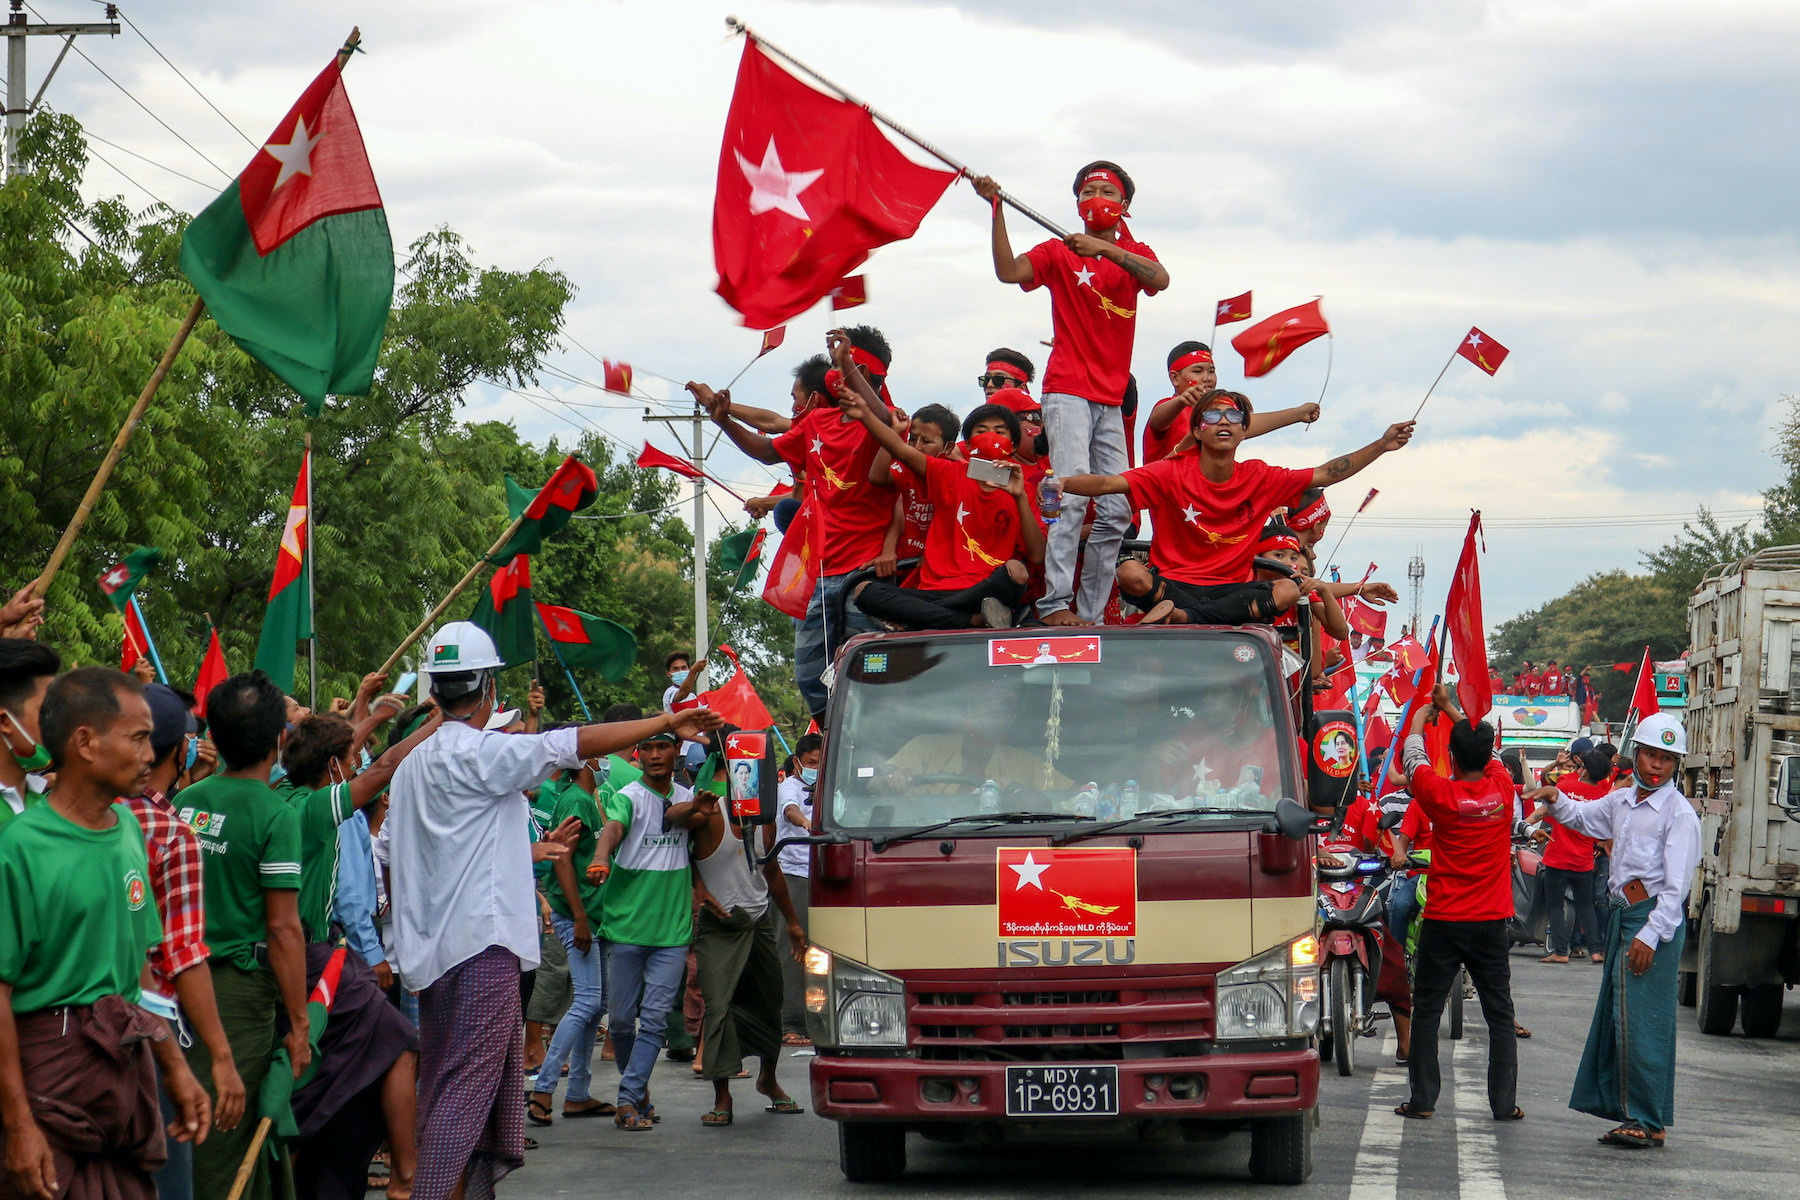 Supporters of the National League for Democracy party on a motorcade pass supporters of the opposition Union Solidarity and Development Party, left, during a campaign in Wundwin, near Mandalay on September 19. (AFP)